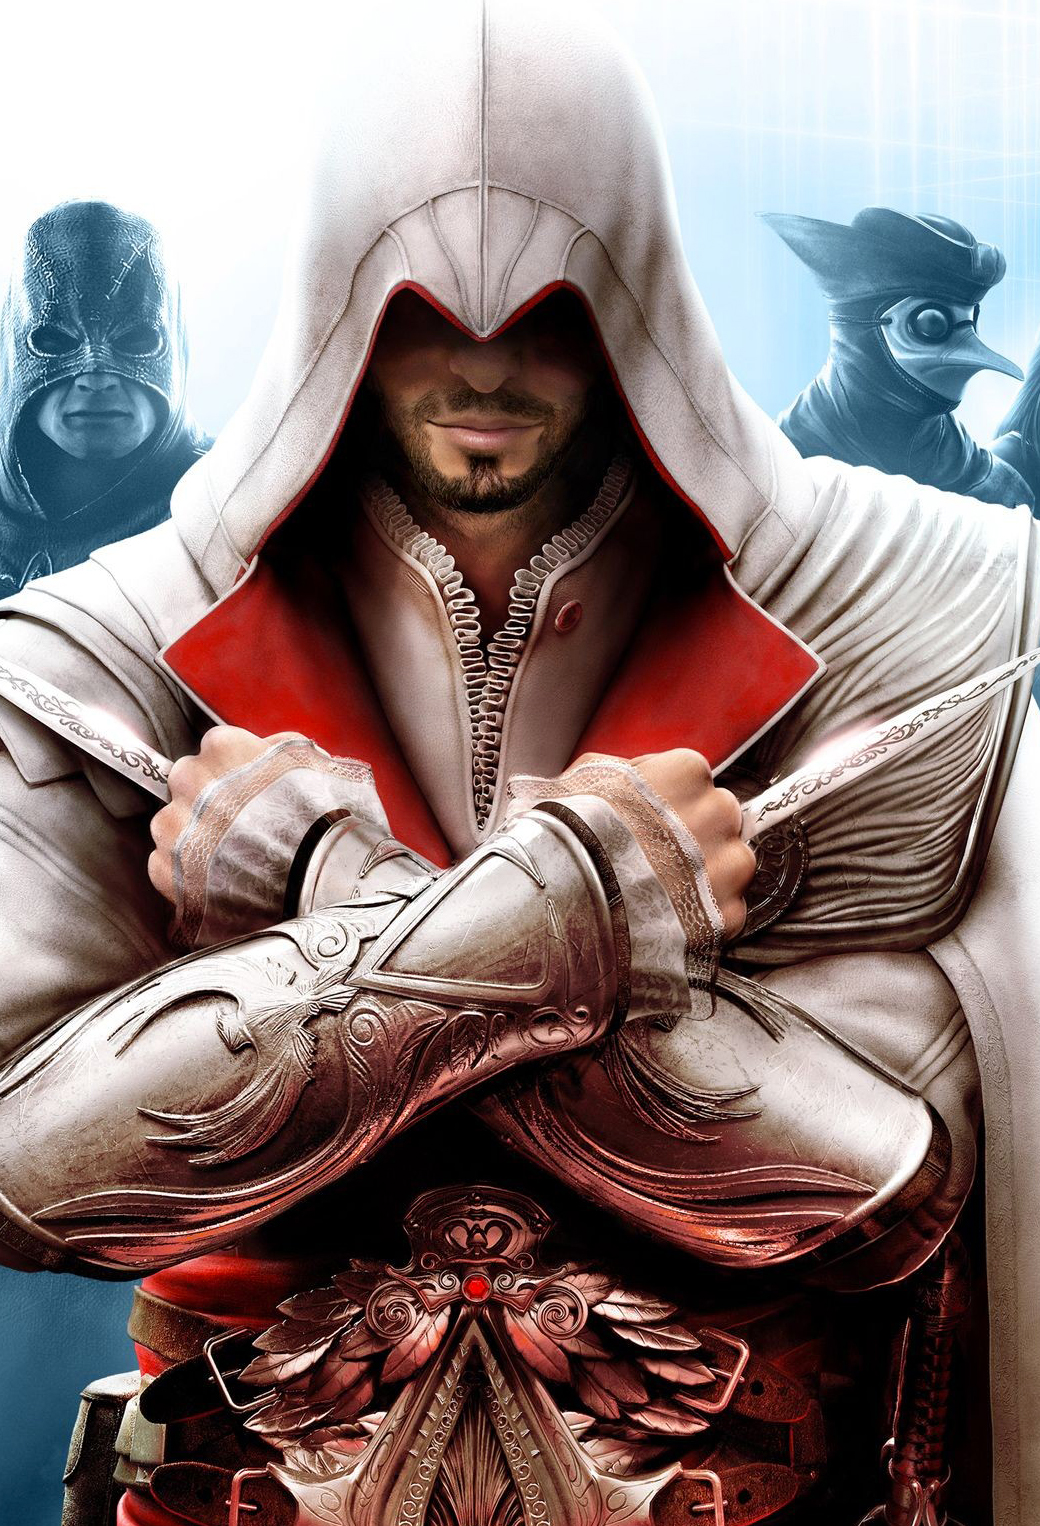 Assassins creed pron adult movies